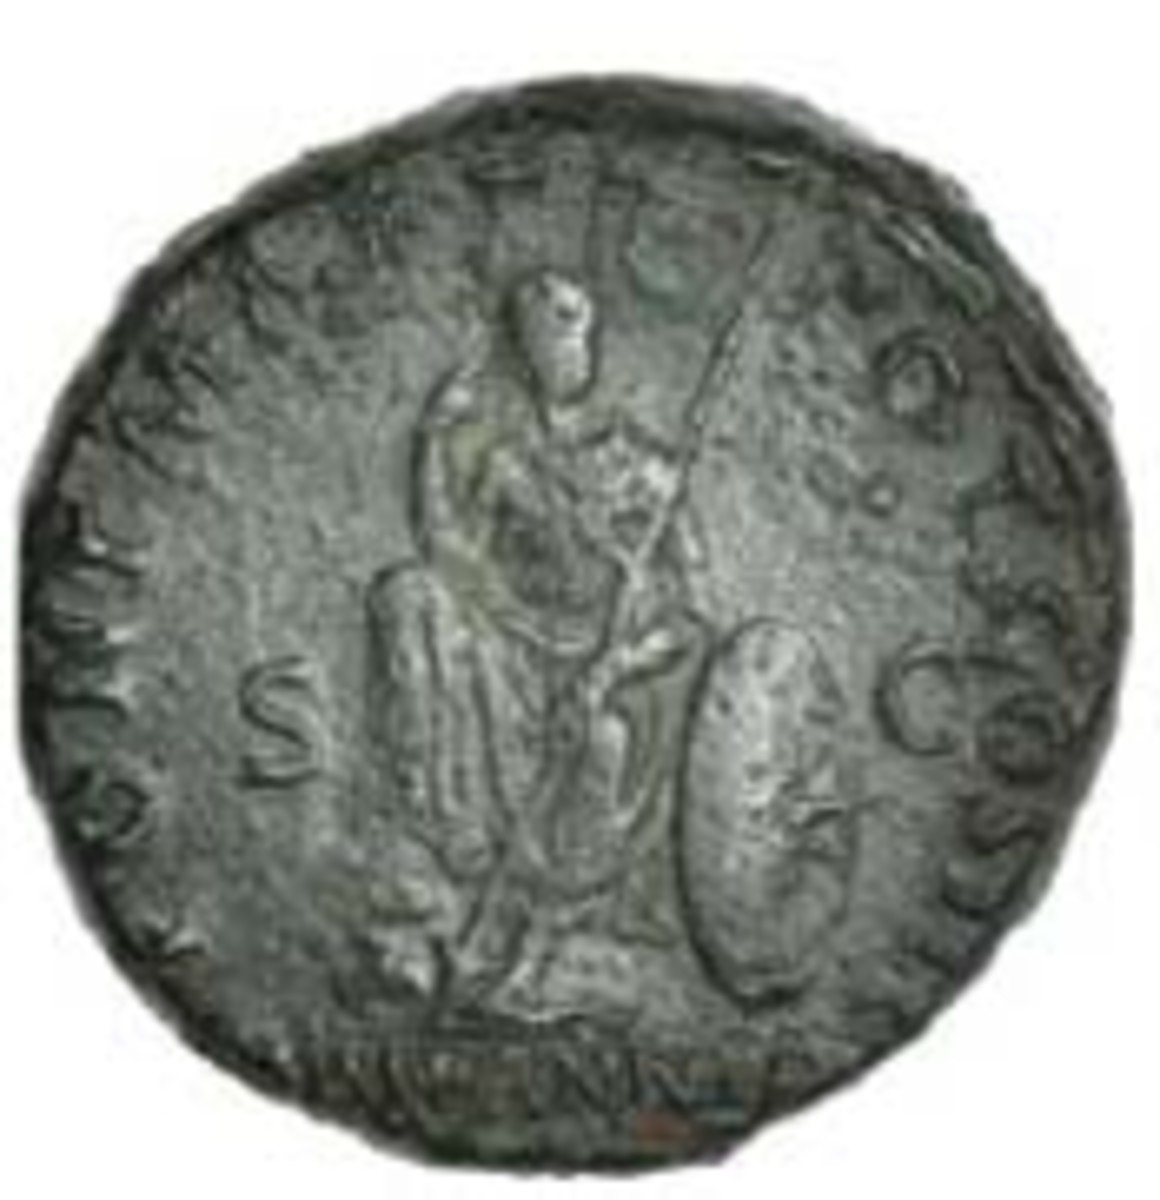 First representation of the goddess Britannia on Roman coinage commemorating Hadrian's victories in Britain over the Brigantes. As of 119-21 C.E. (S-637A), it realized $1,087 [£780] in fine. (Image courtesy and © DNW)